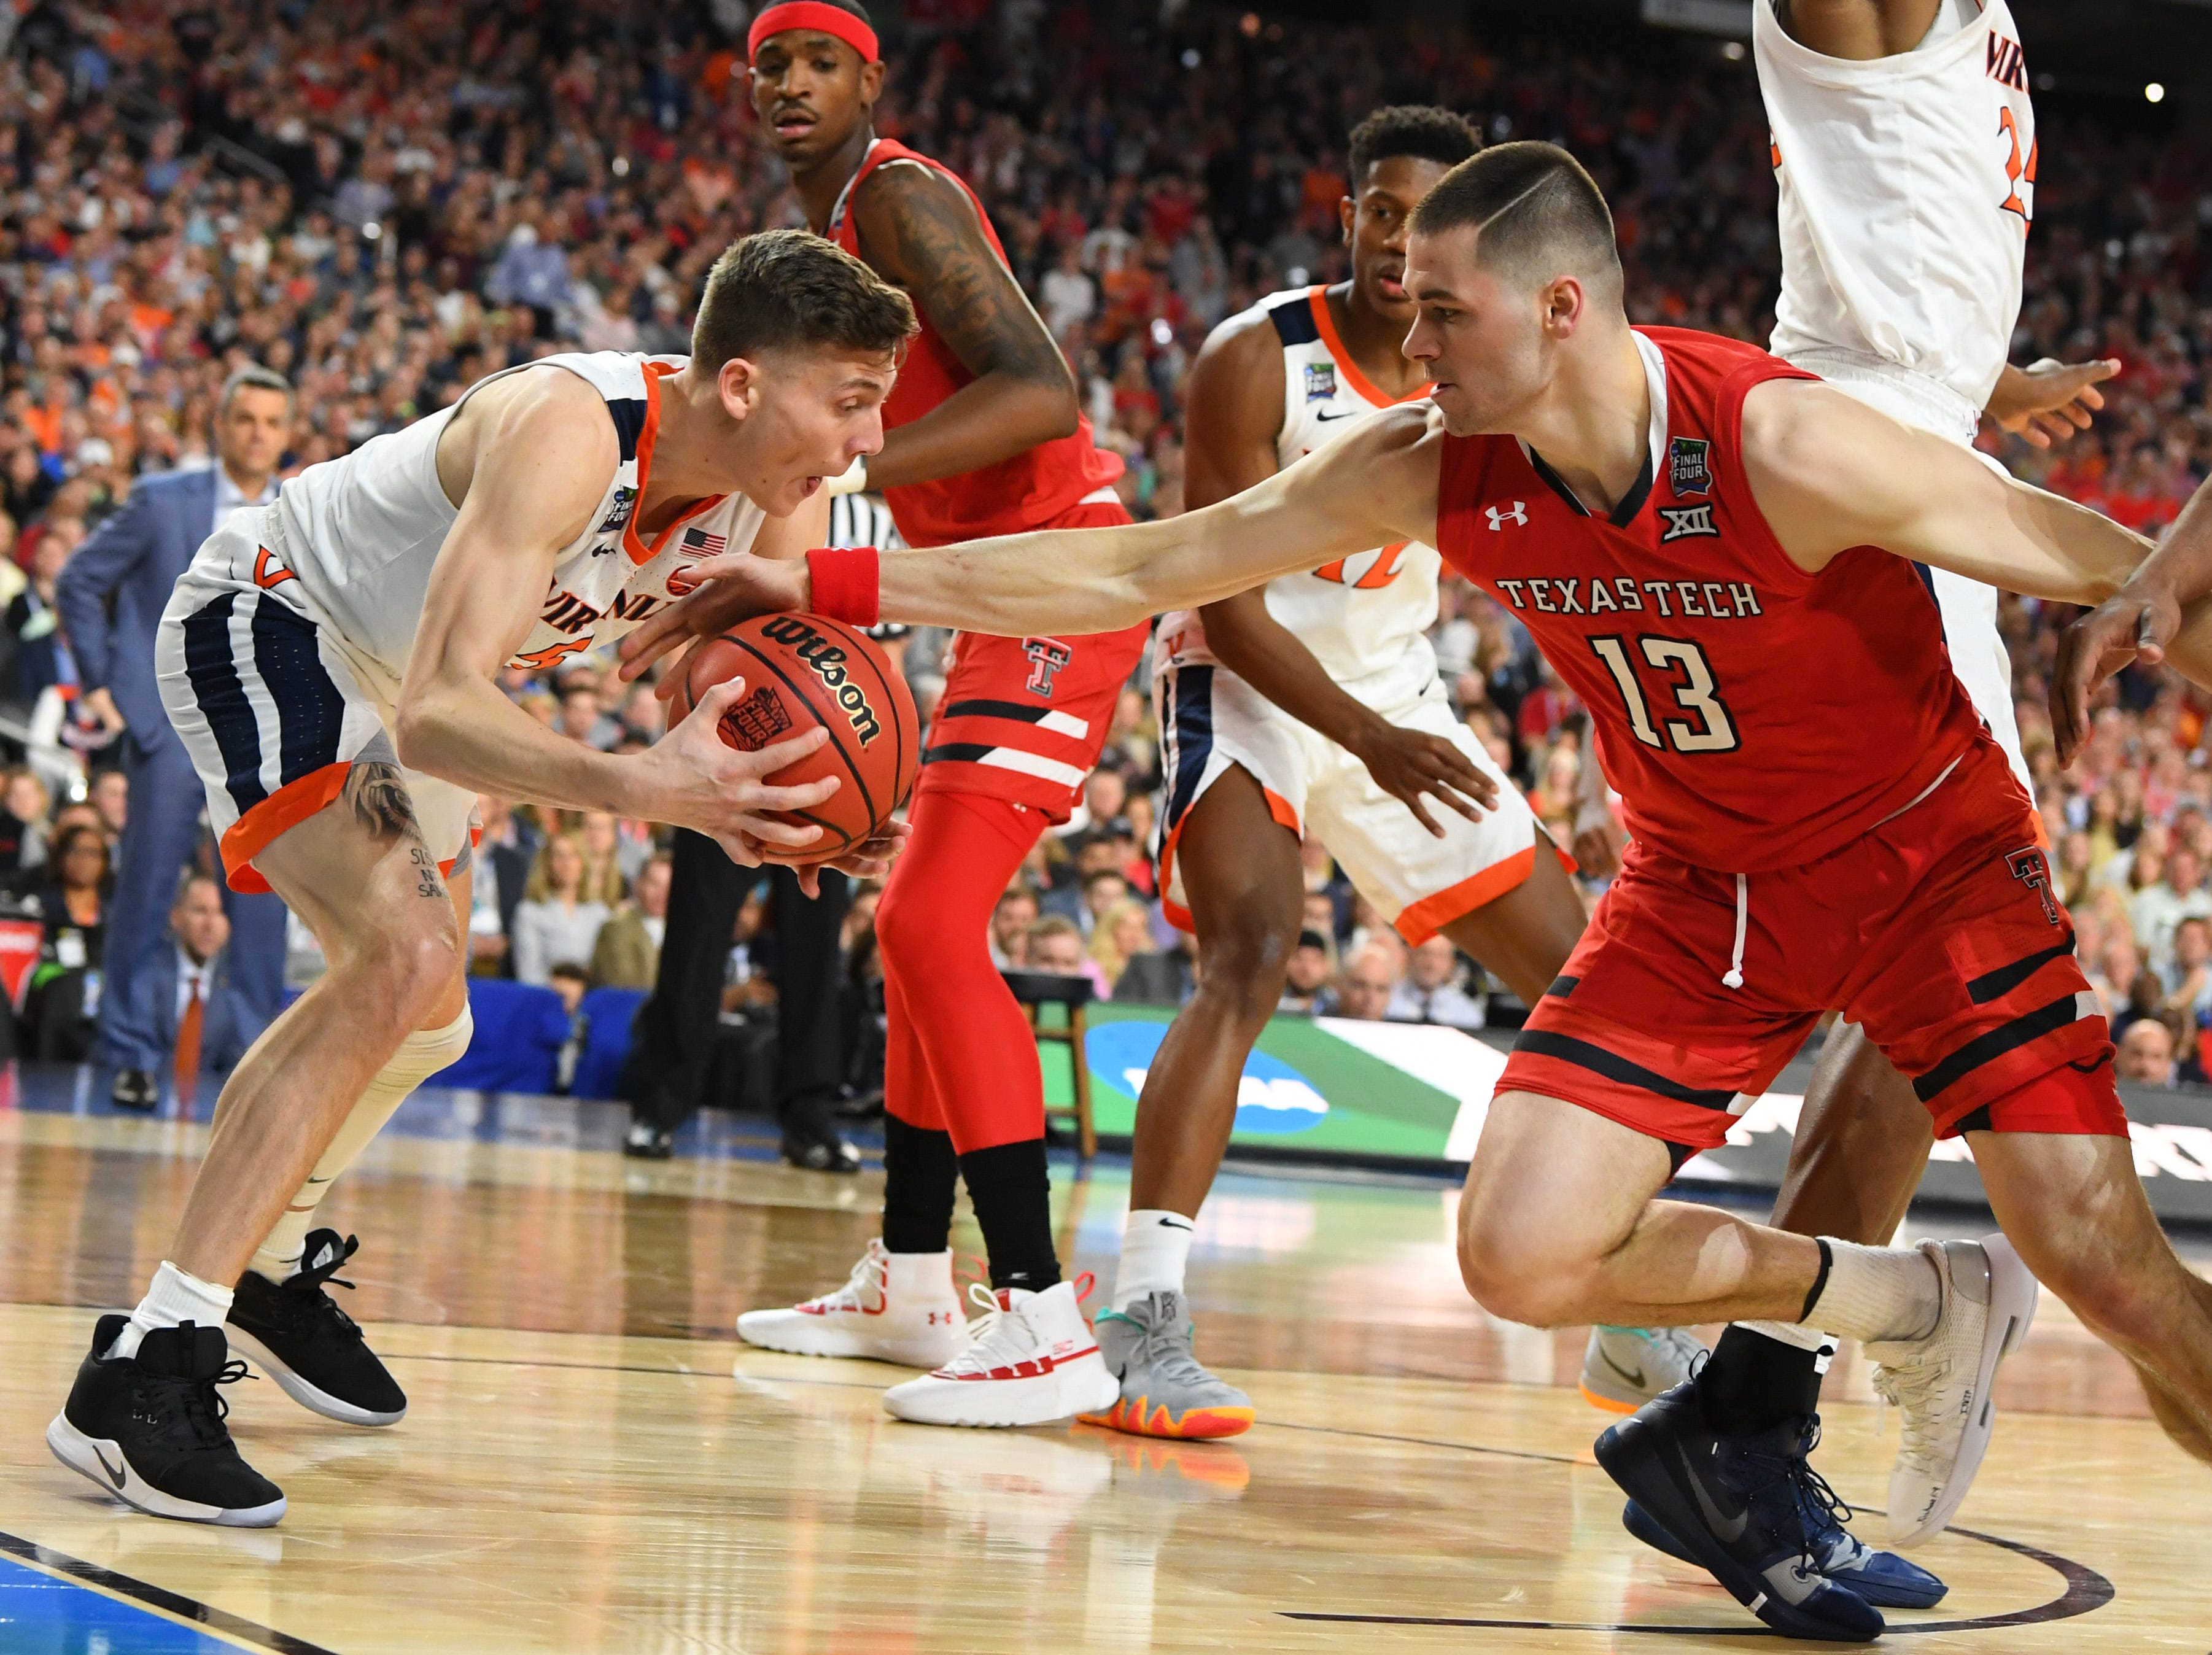 Apr 8, 2019; Minneapolis, MN, USA; Virginia Cavaliers guard Kyle Guy (5) steals the ball from Texas Tech Red Raiders guard Matt Mooney (13) in the championship game of the 2019 men's Final Four at US Bank Stadium. Mandatory Credit: Robert Deutsch-USA TODAY Sports